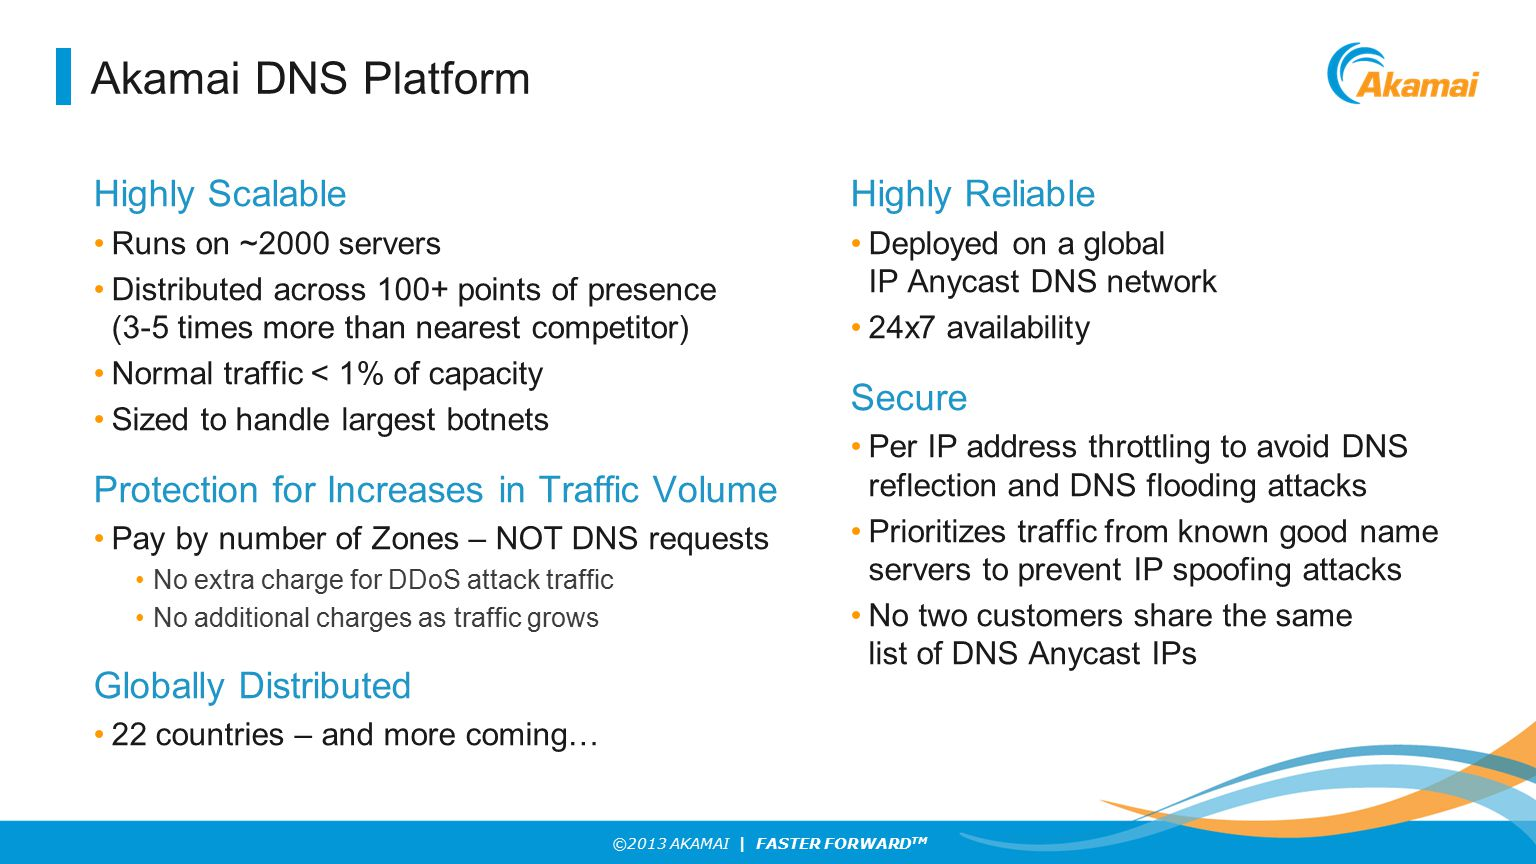 ©2013 AKAMAI | FASTER FORWARD TM Akamai DNS Platform Highly Scalable Runs on ~2000 servers Distributed across 100+ points of presence (3-5 times more than nearest competitor) Normal traffic < 1% of capacity Sized to handle largest botnets Protection for Increases in Traffic Volume Pay by number of Zones – NOT DNS requests No extra charge for DDoS attack traffic No additional charges as traffic grows Globally Distributed 22 countries – and more coming… Highly Reliable Deployed on a global IP Anycast DNS network 24x7 availability Secure Per IP address throttling to avoid DNS reflection and DNS flooding attacks Prioritizes traffic from known good name servers to prevent IP spoofing attacks No two customers share the same list of DNS Anycast IPs